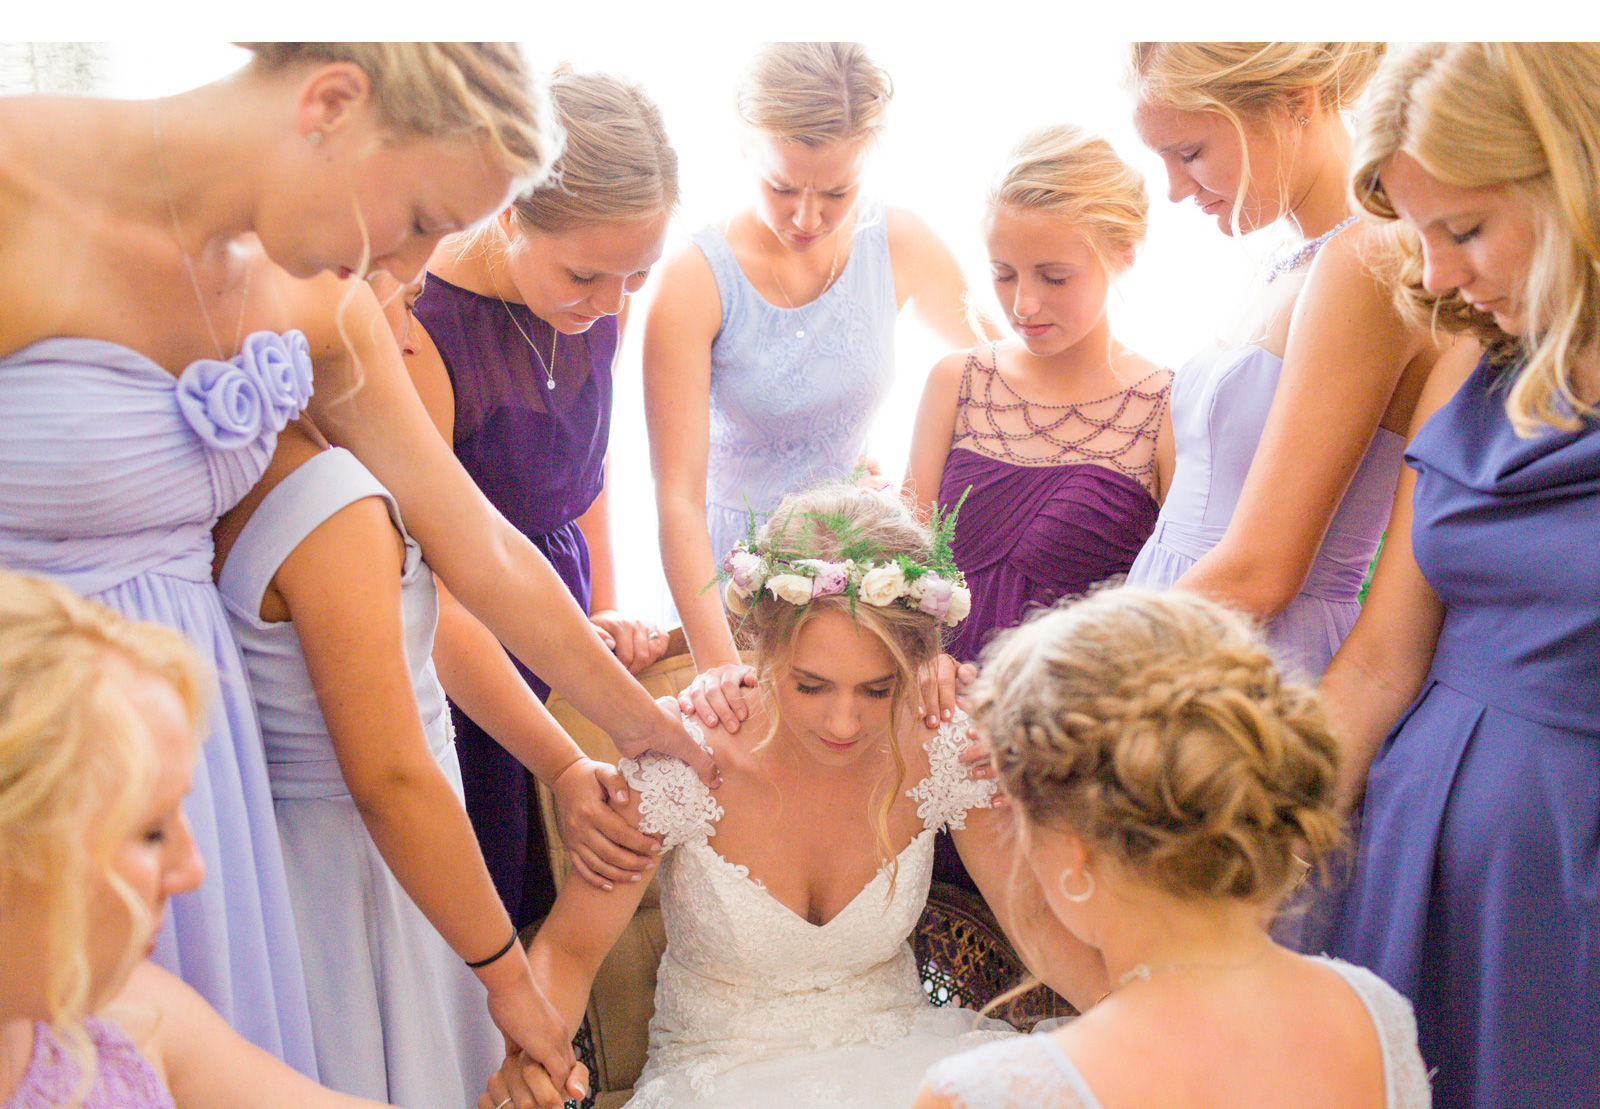 Salzman-Wedding---Natalie-Schutt-Photography_04.jpg